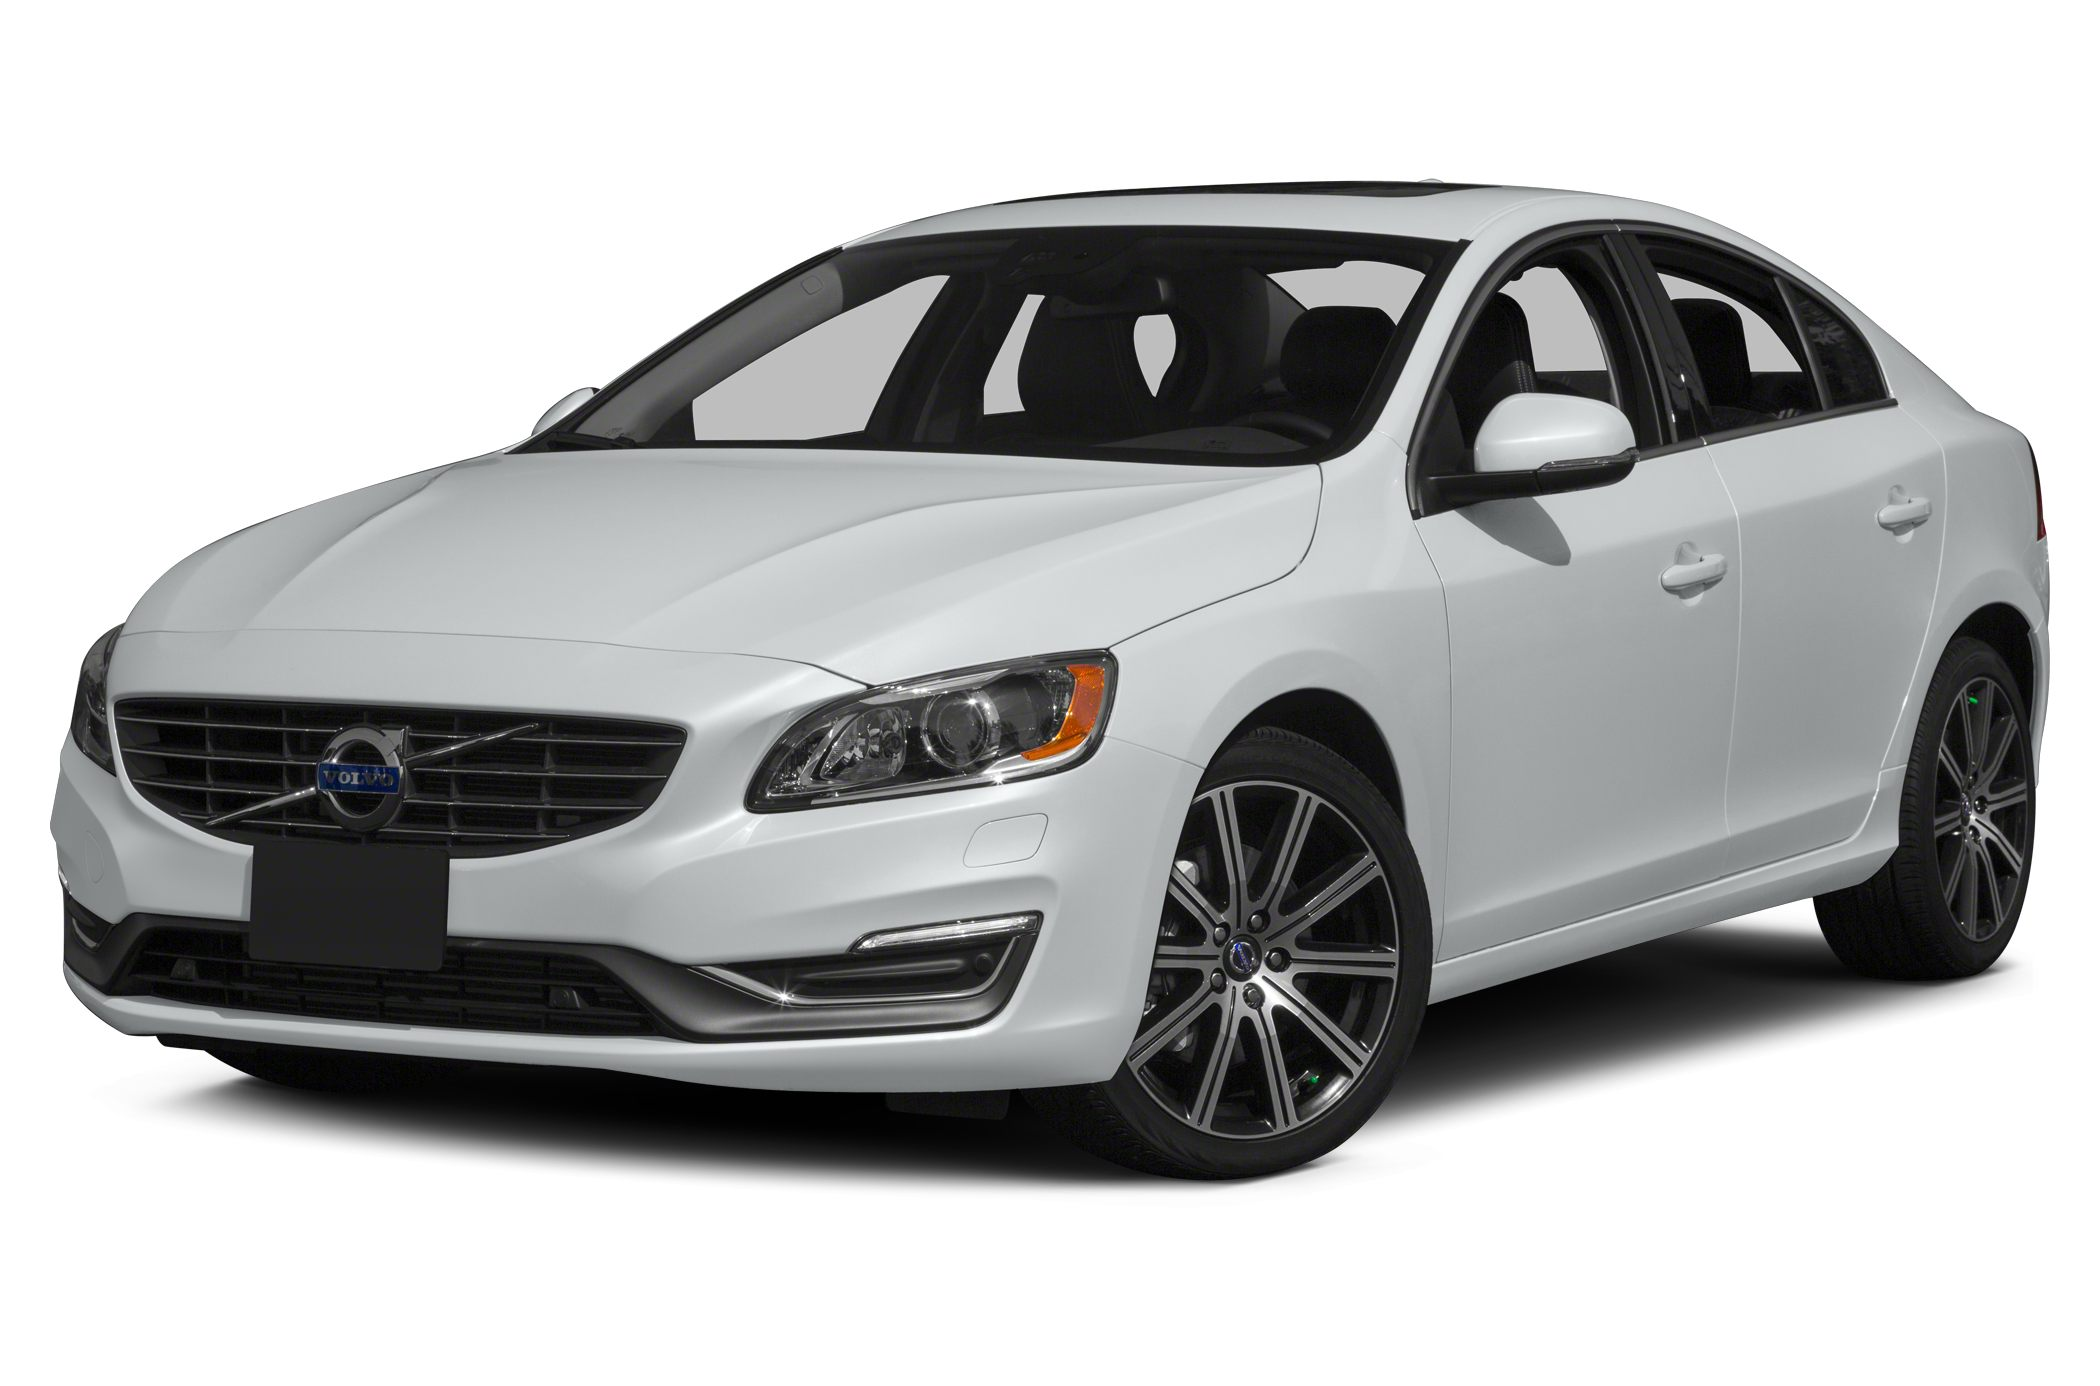 2015 Volvo S60 T5 Platinum Sedan for sale in Macon for $43,925 with 0 miles.